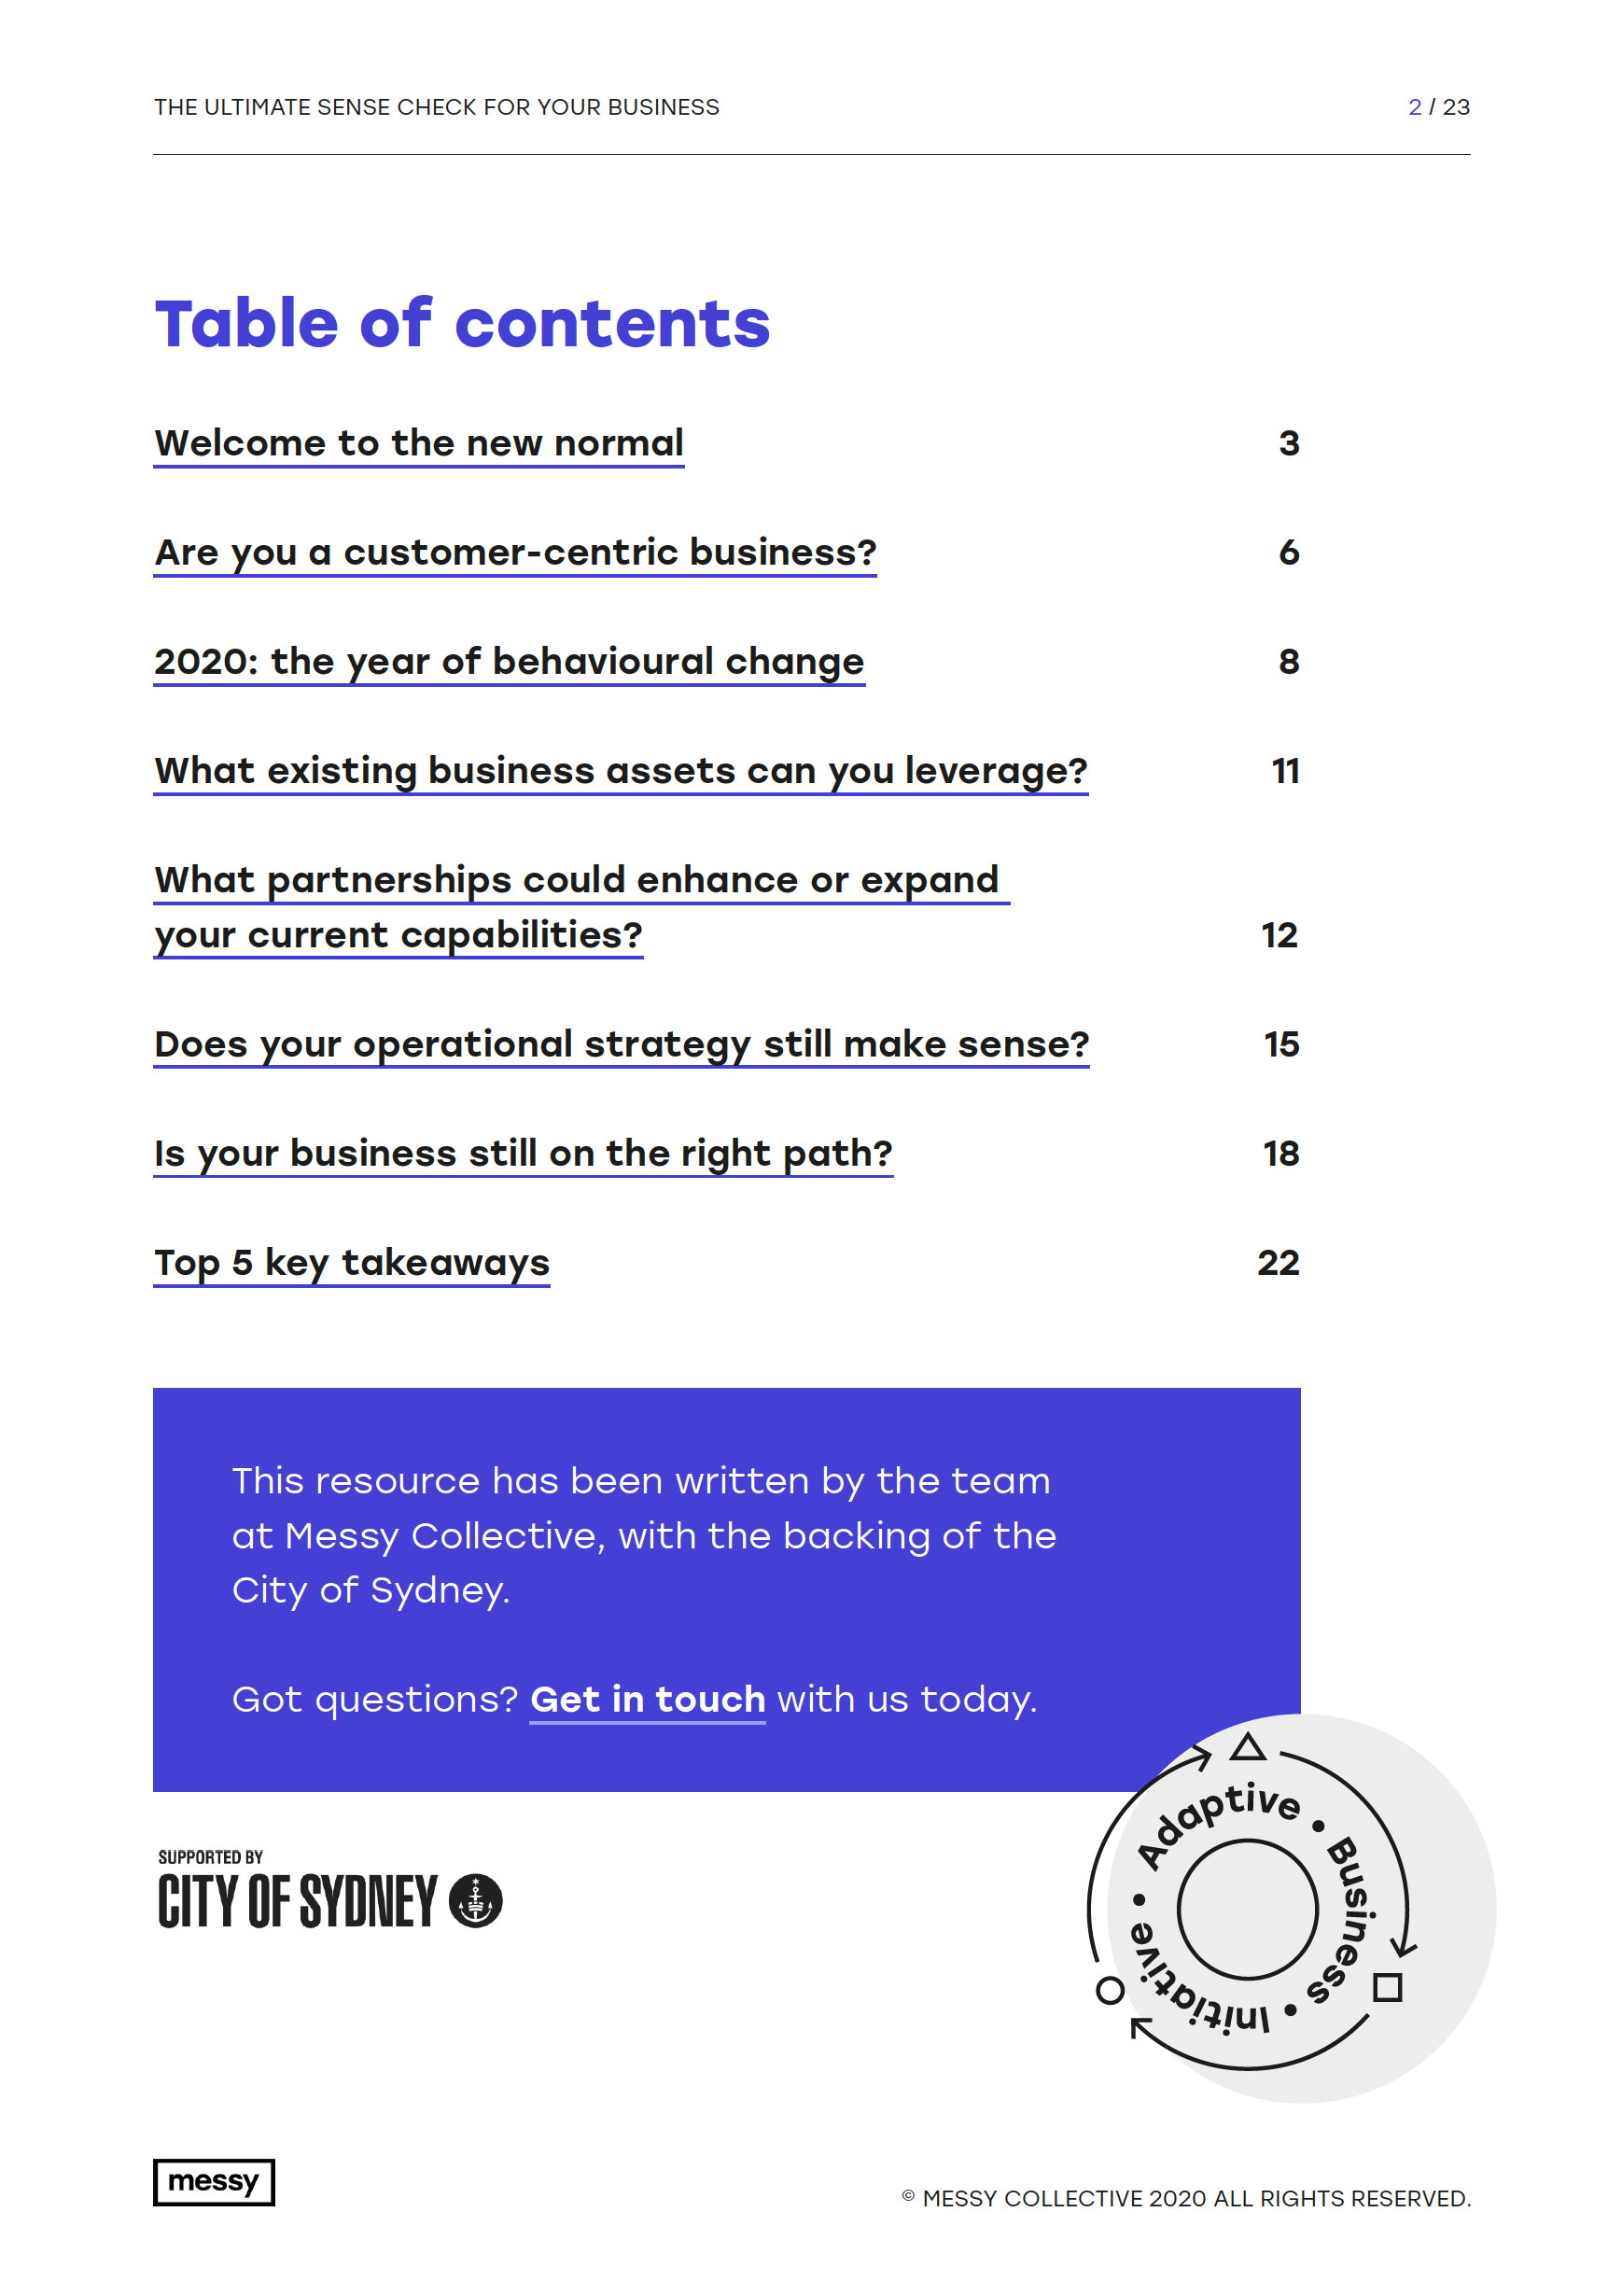 The Ultimate Sense Check for your Business guide - page 2